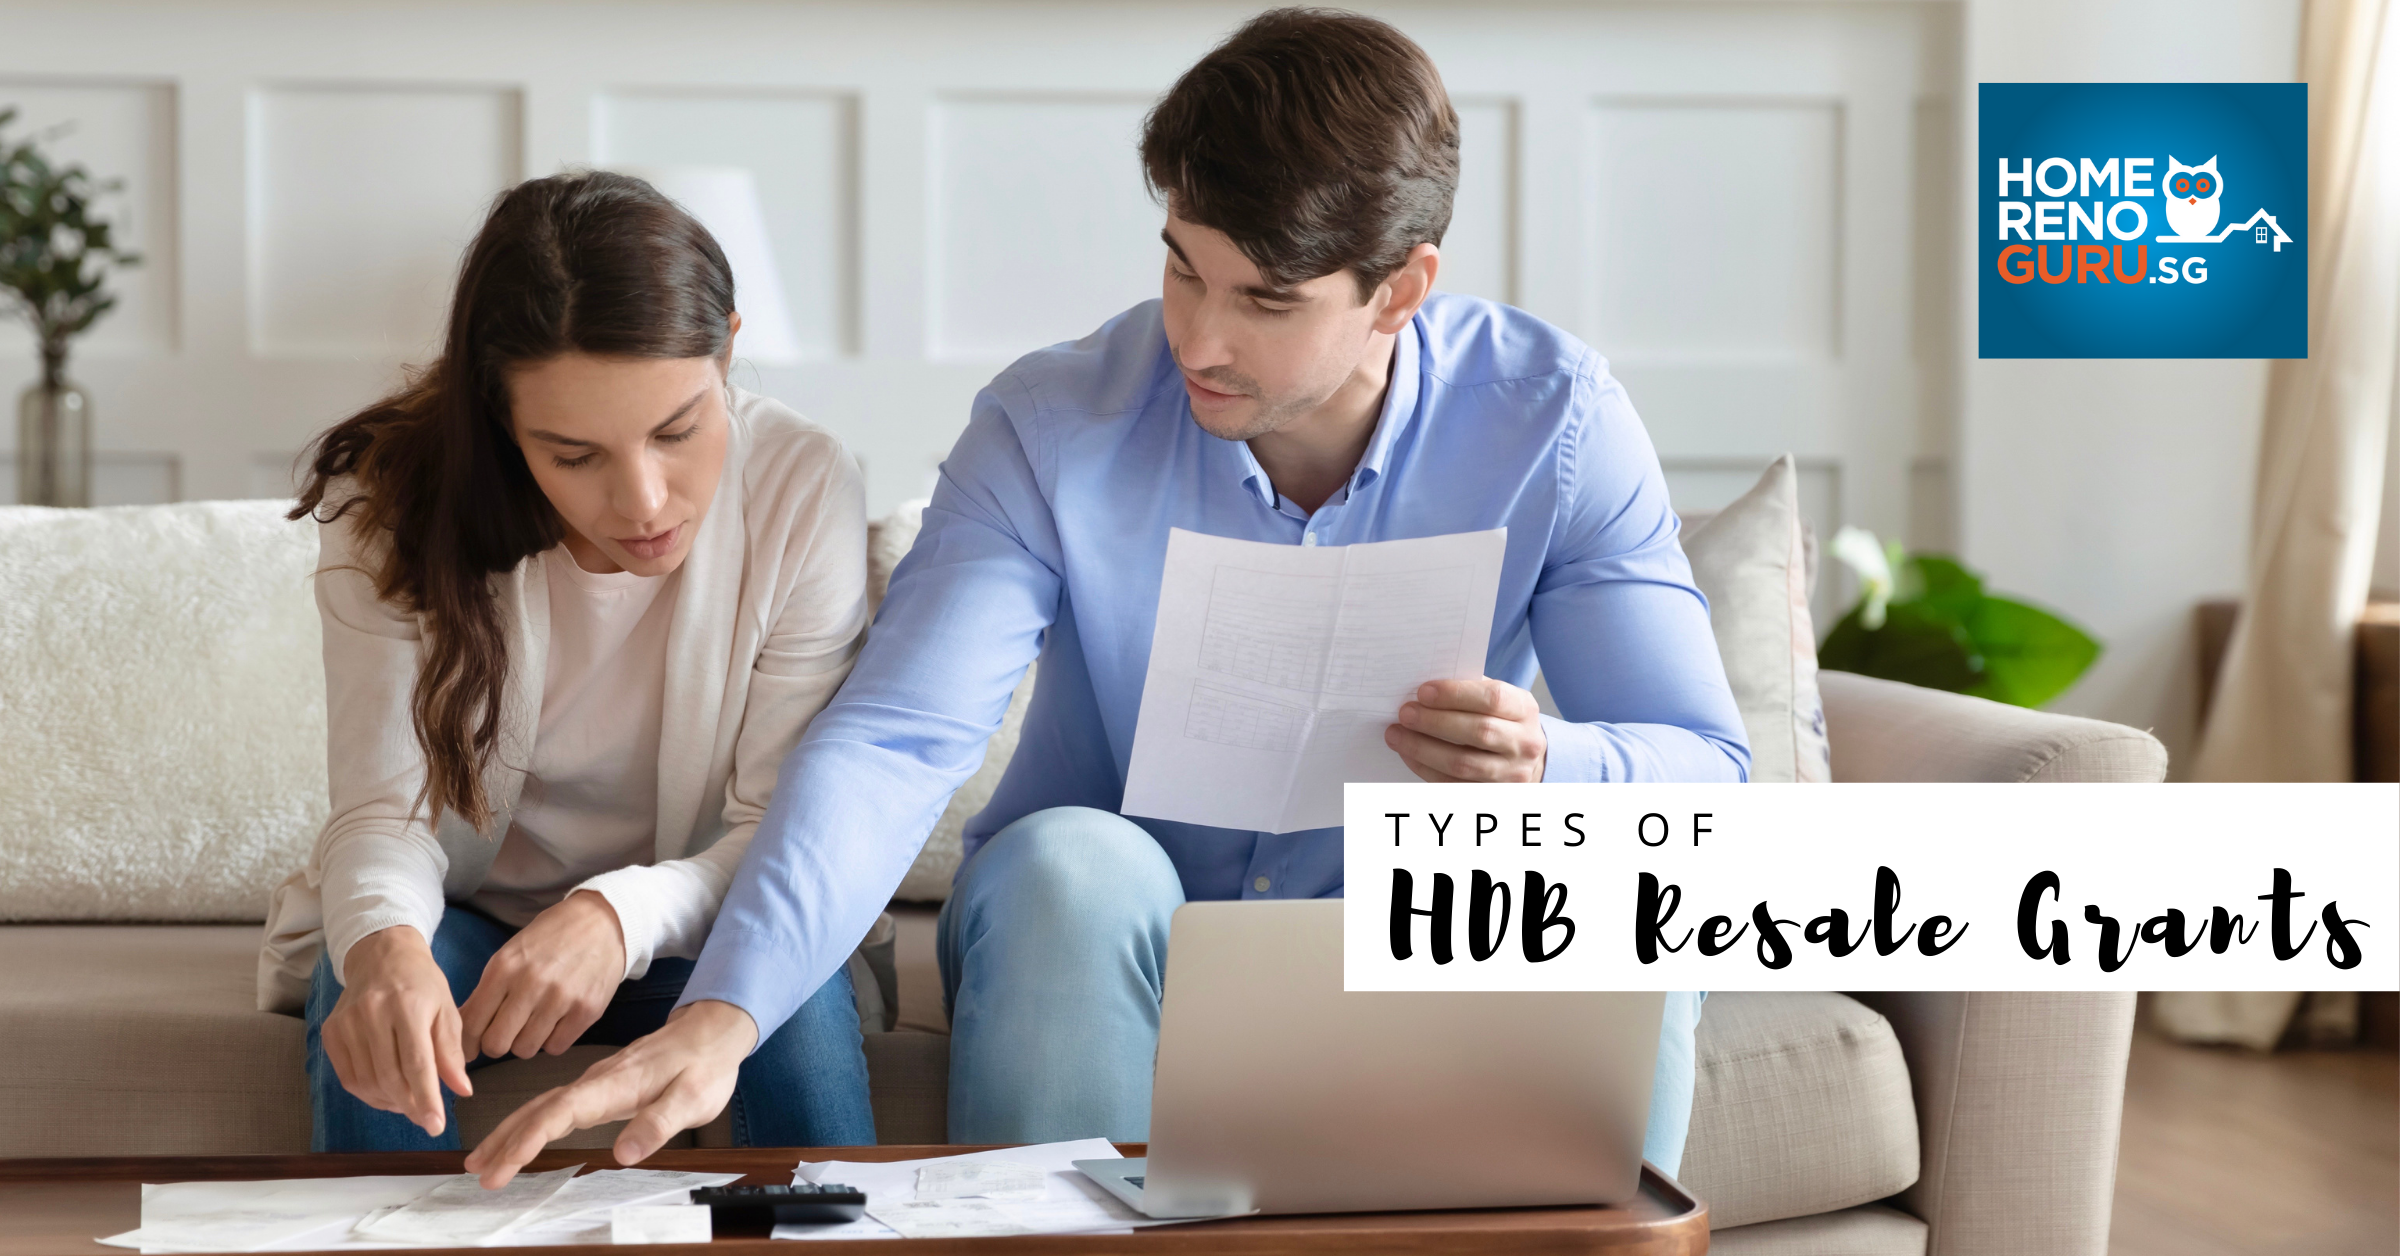 Types of HDB Resale Grant